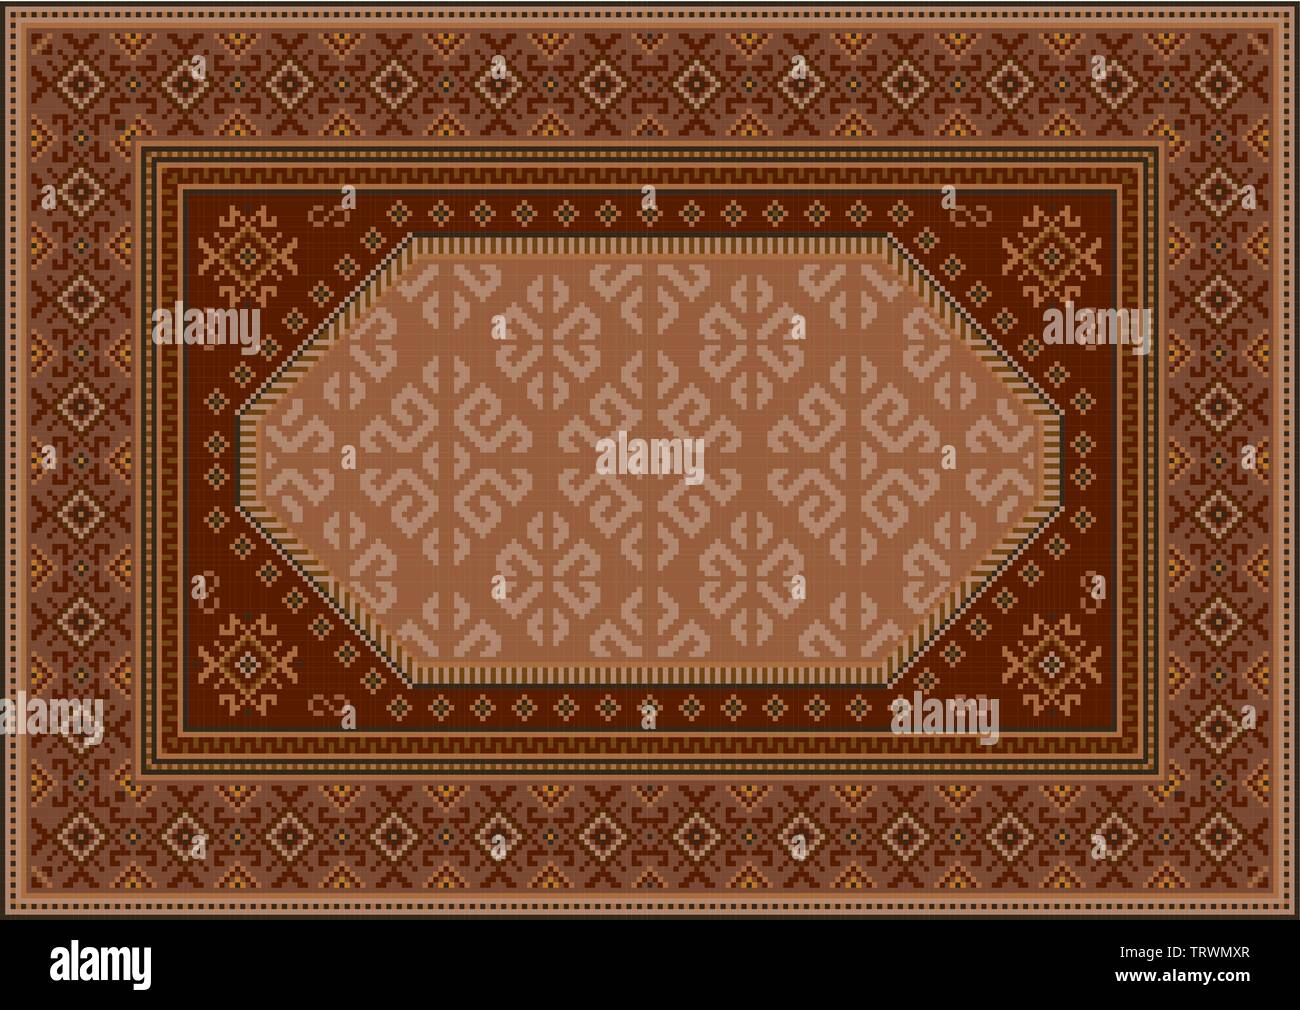 Vintage luxury oriental carpet in brown tones with patterns of burgundy, beige and yellow color - Stock Image